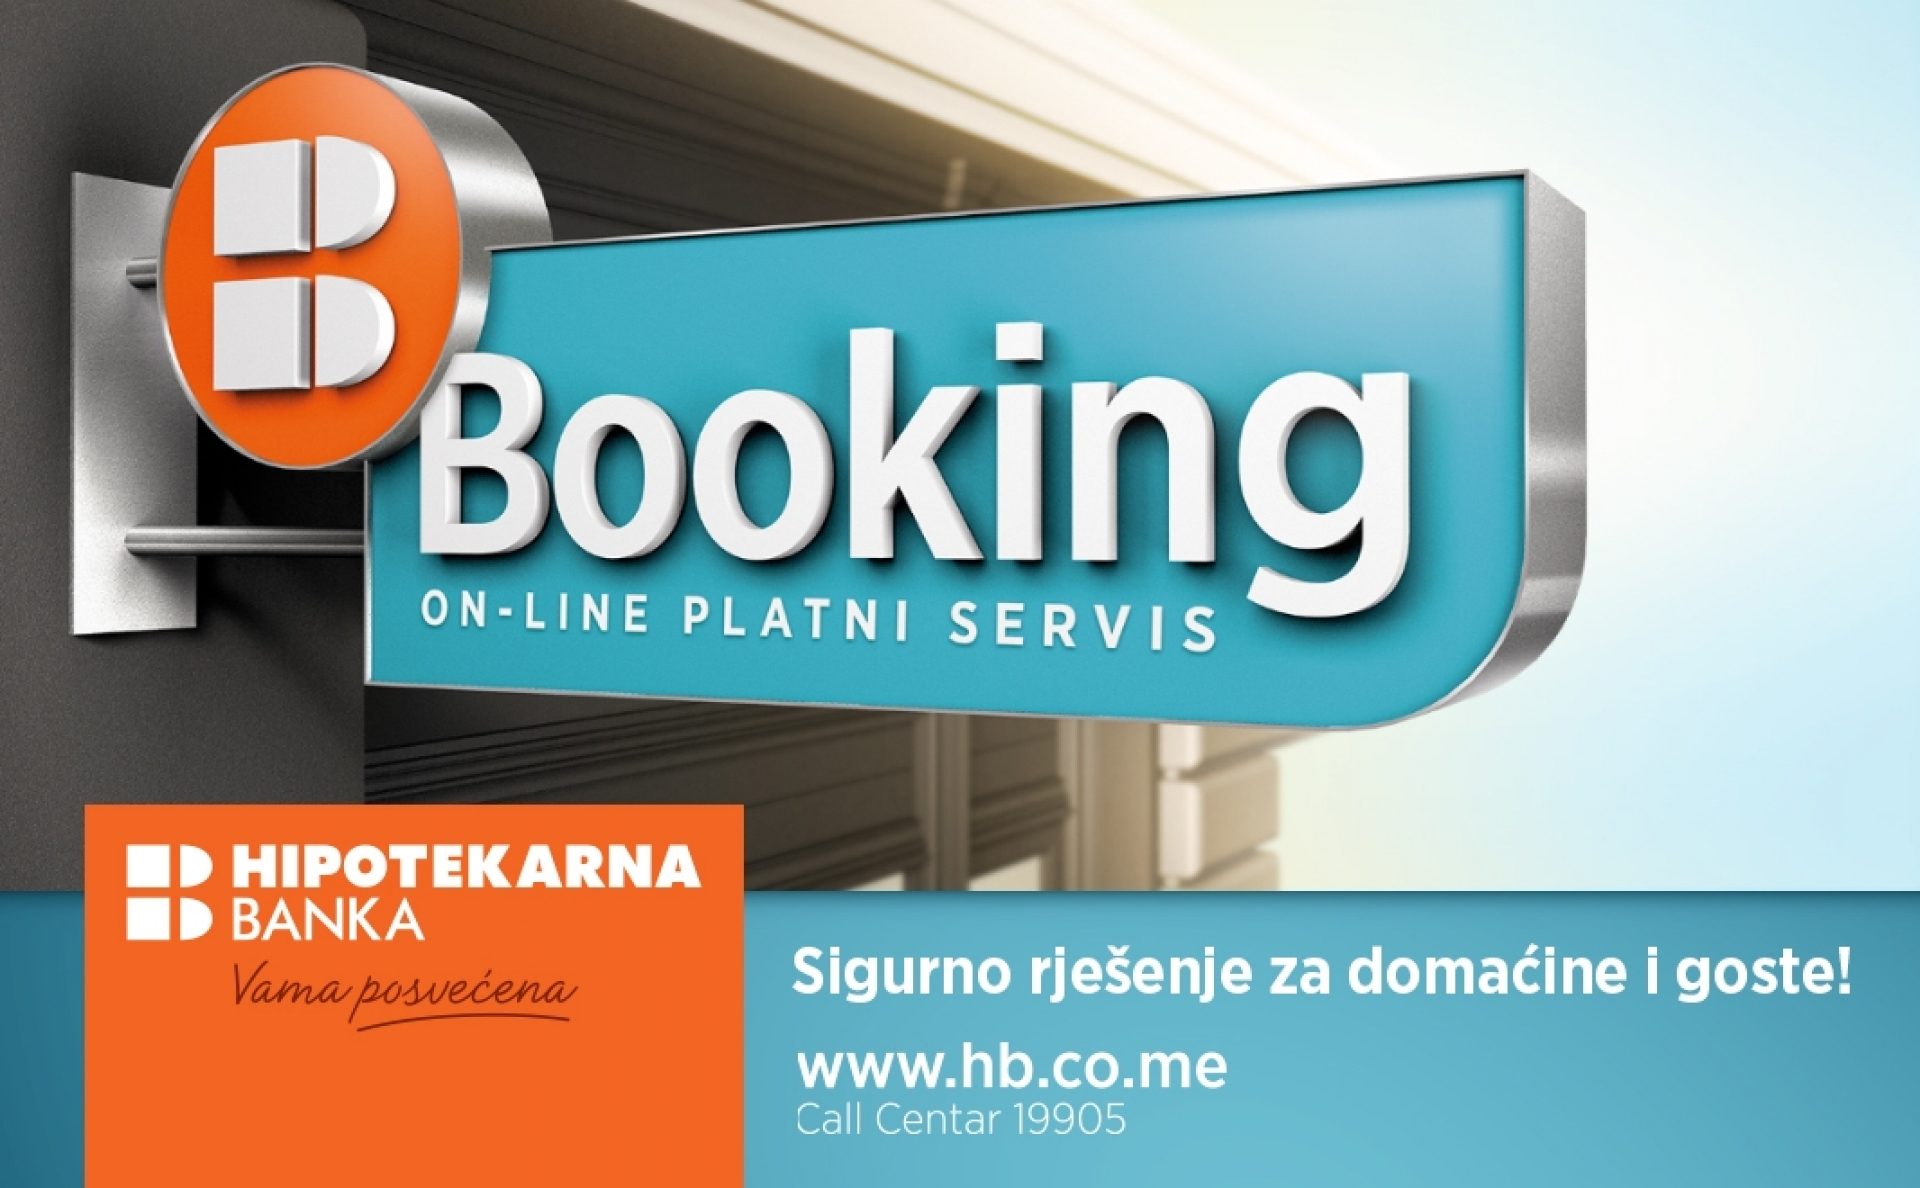 HB booking